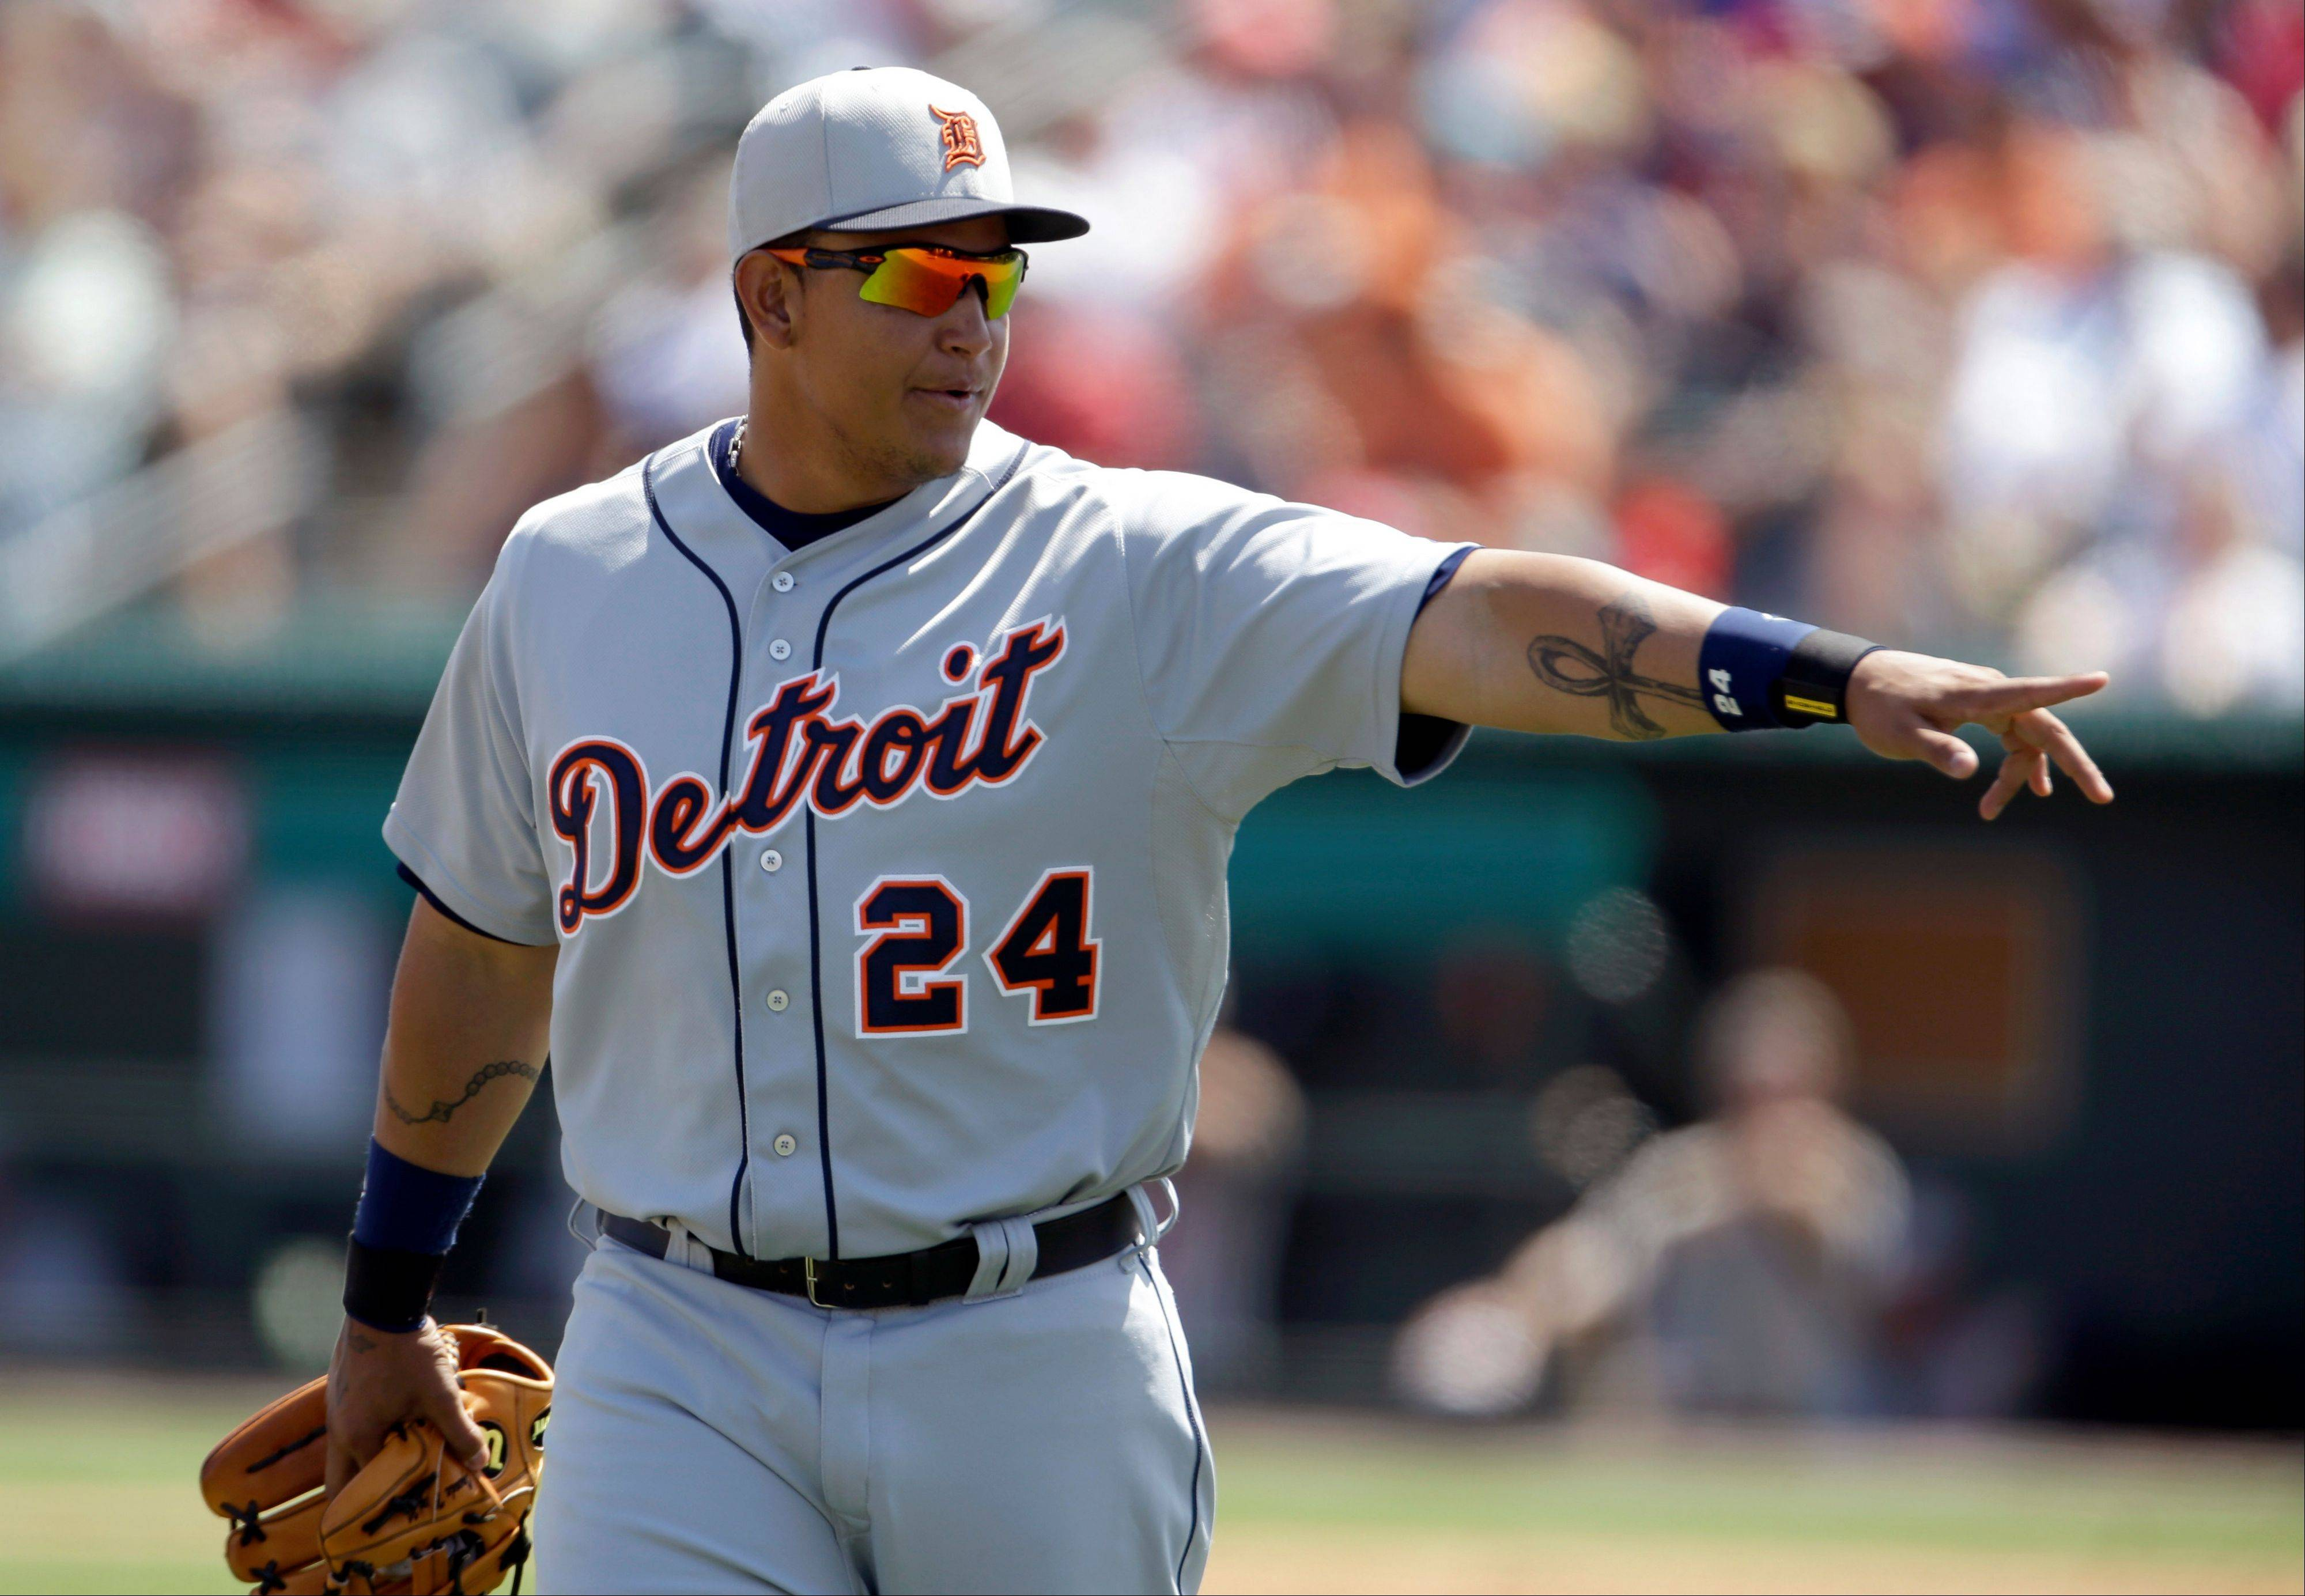 Triple Crown winner Miguel Cabrera and the Tigers will be tough to top this season.